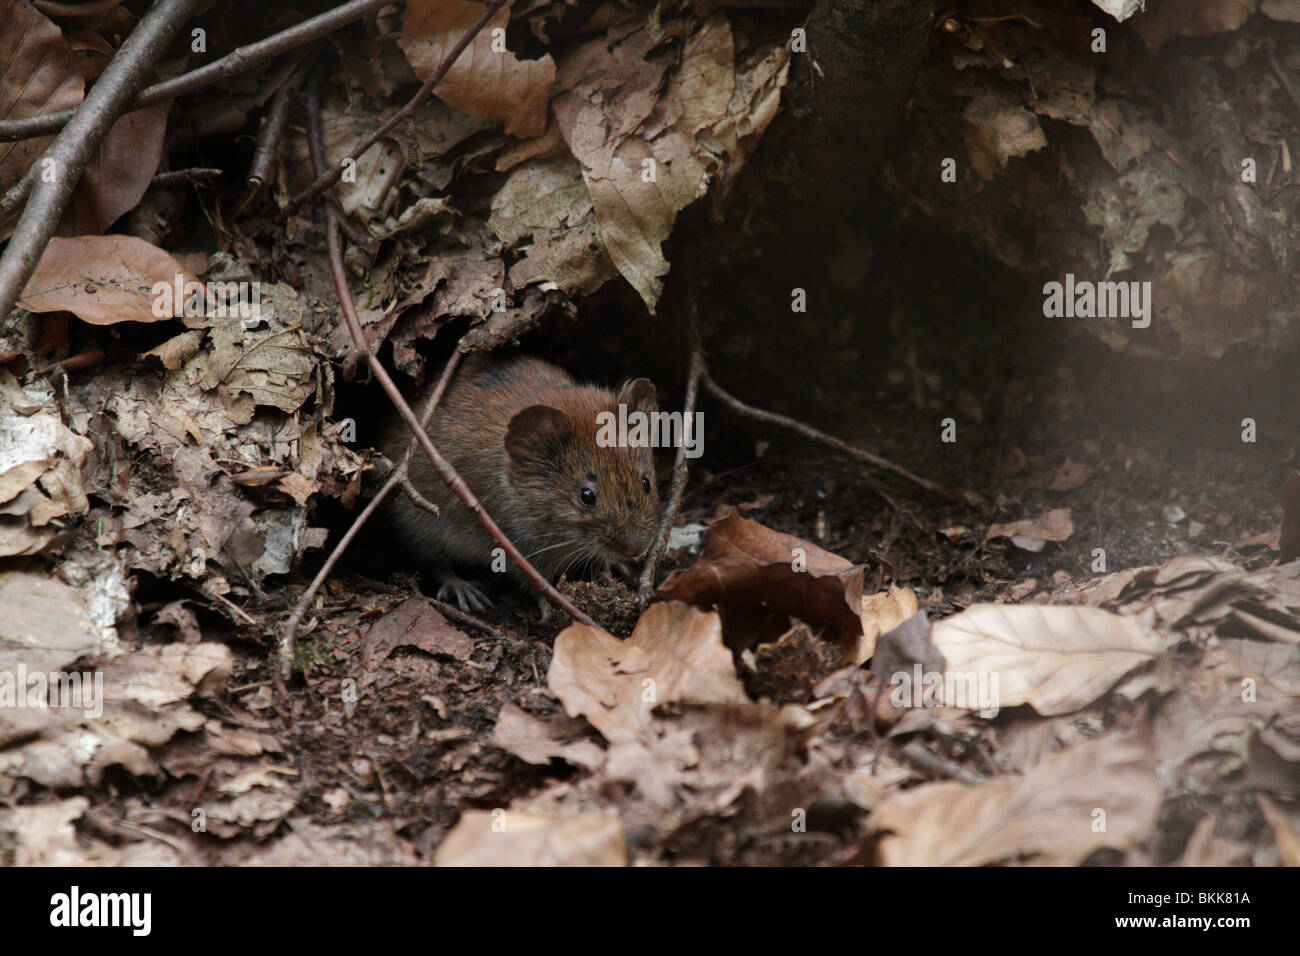 Bank vole mouse (Myodes glareolus) in its natural habitat. They are (pretty cute) vectors for the Hanta virus. - Stock Image